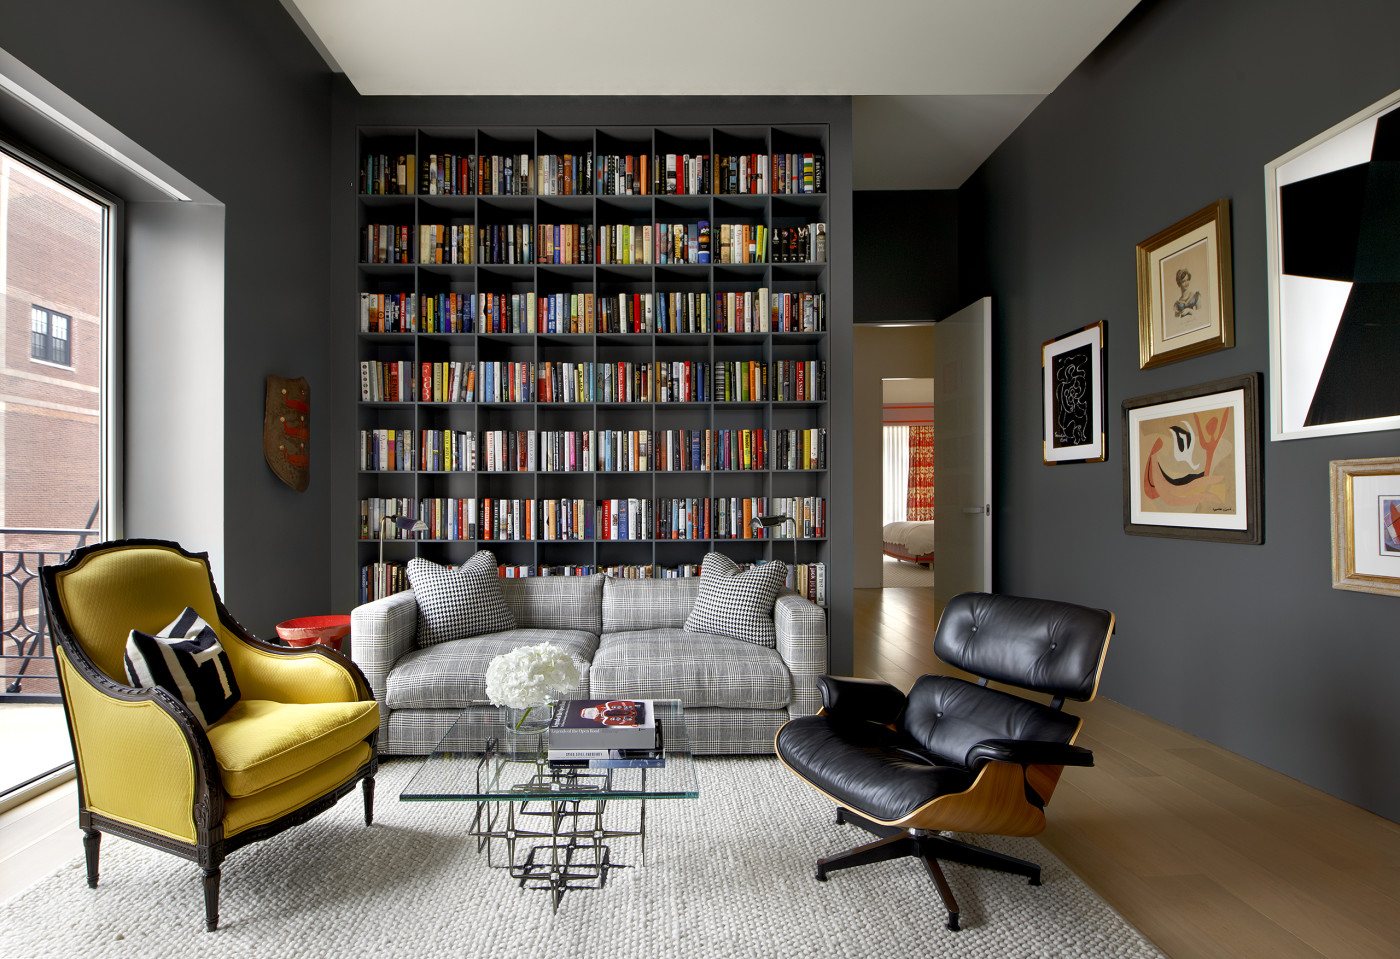 Am nager une biblioth que murale dans son salon quelle couleur choisir - Bibliotheque salon design ...